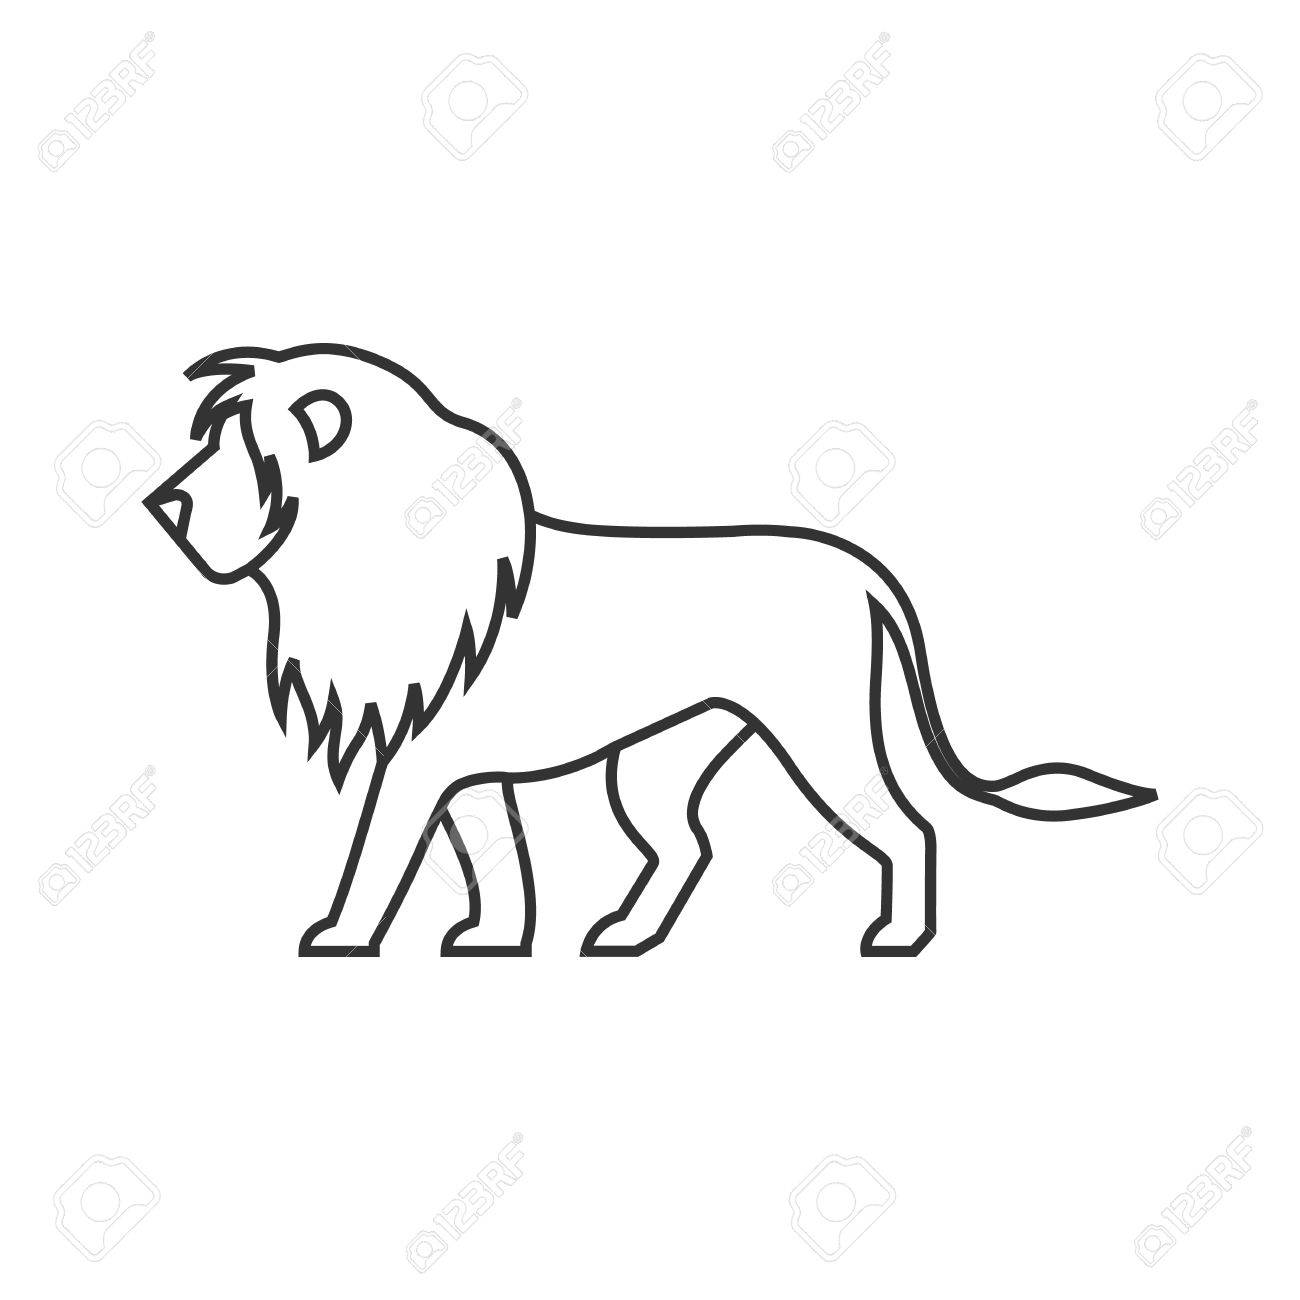 Lion Icon In Thin Outline Style Silhouette Logo Mammal Carnivore Royalty Free Cliparts Vectors And Stock Illustration Image 72639129 Download lion silhouette stock vectors. lion icon in thin outline style silhouette logo mammal carnivore